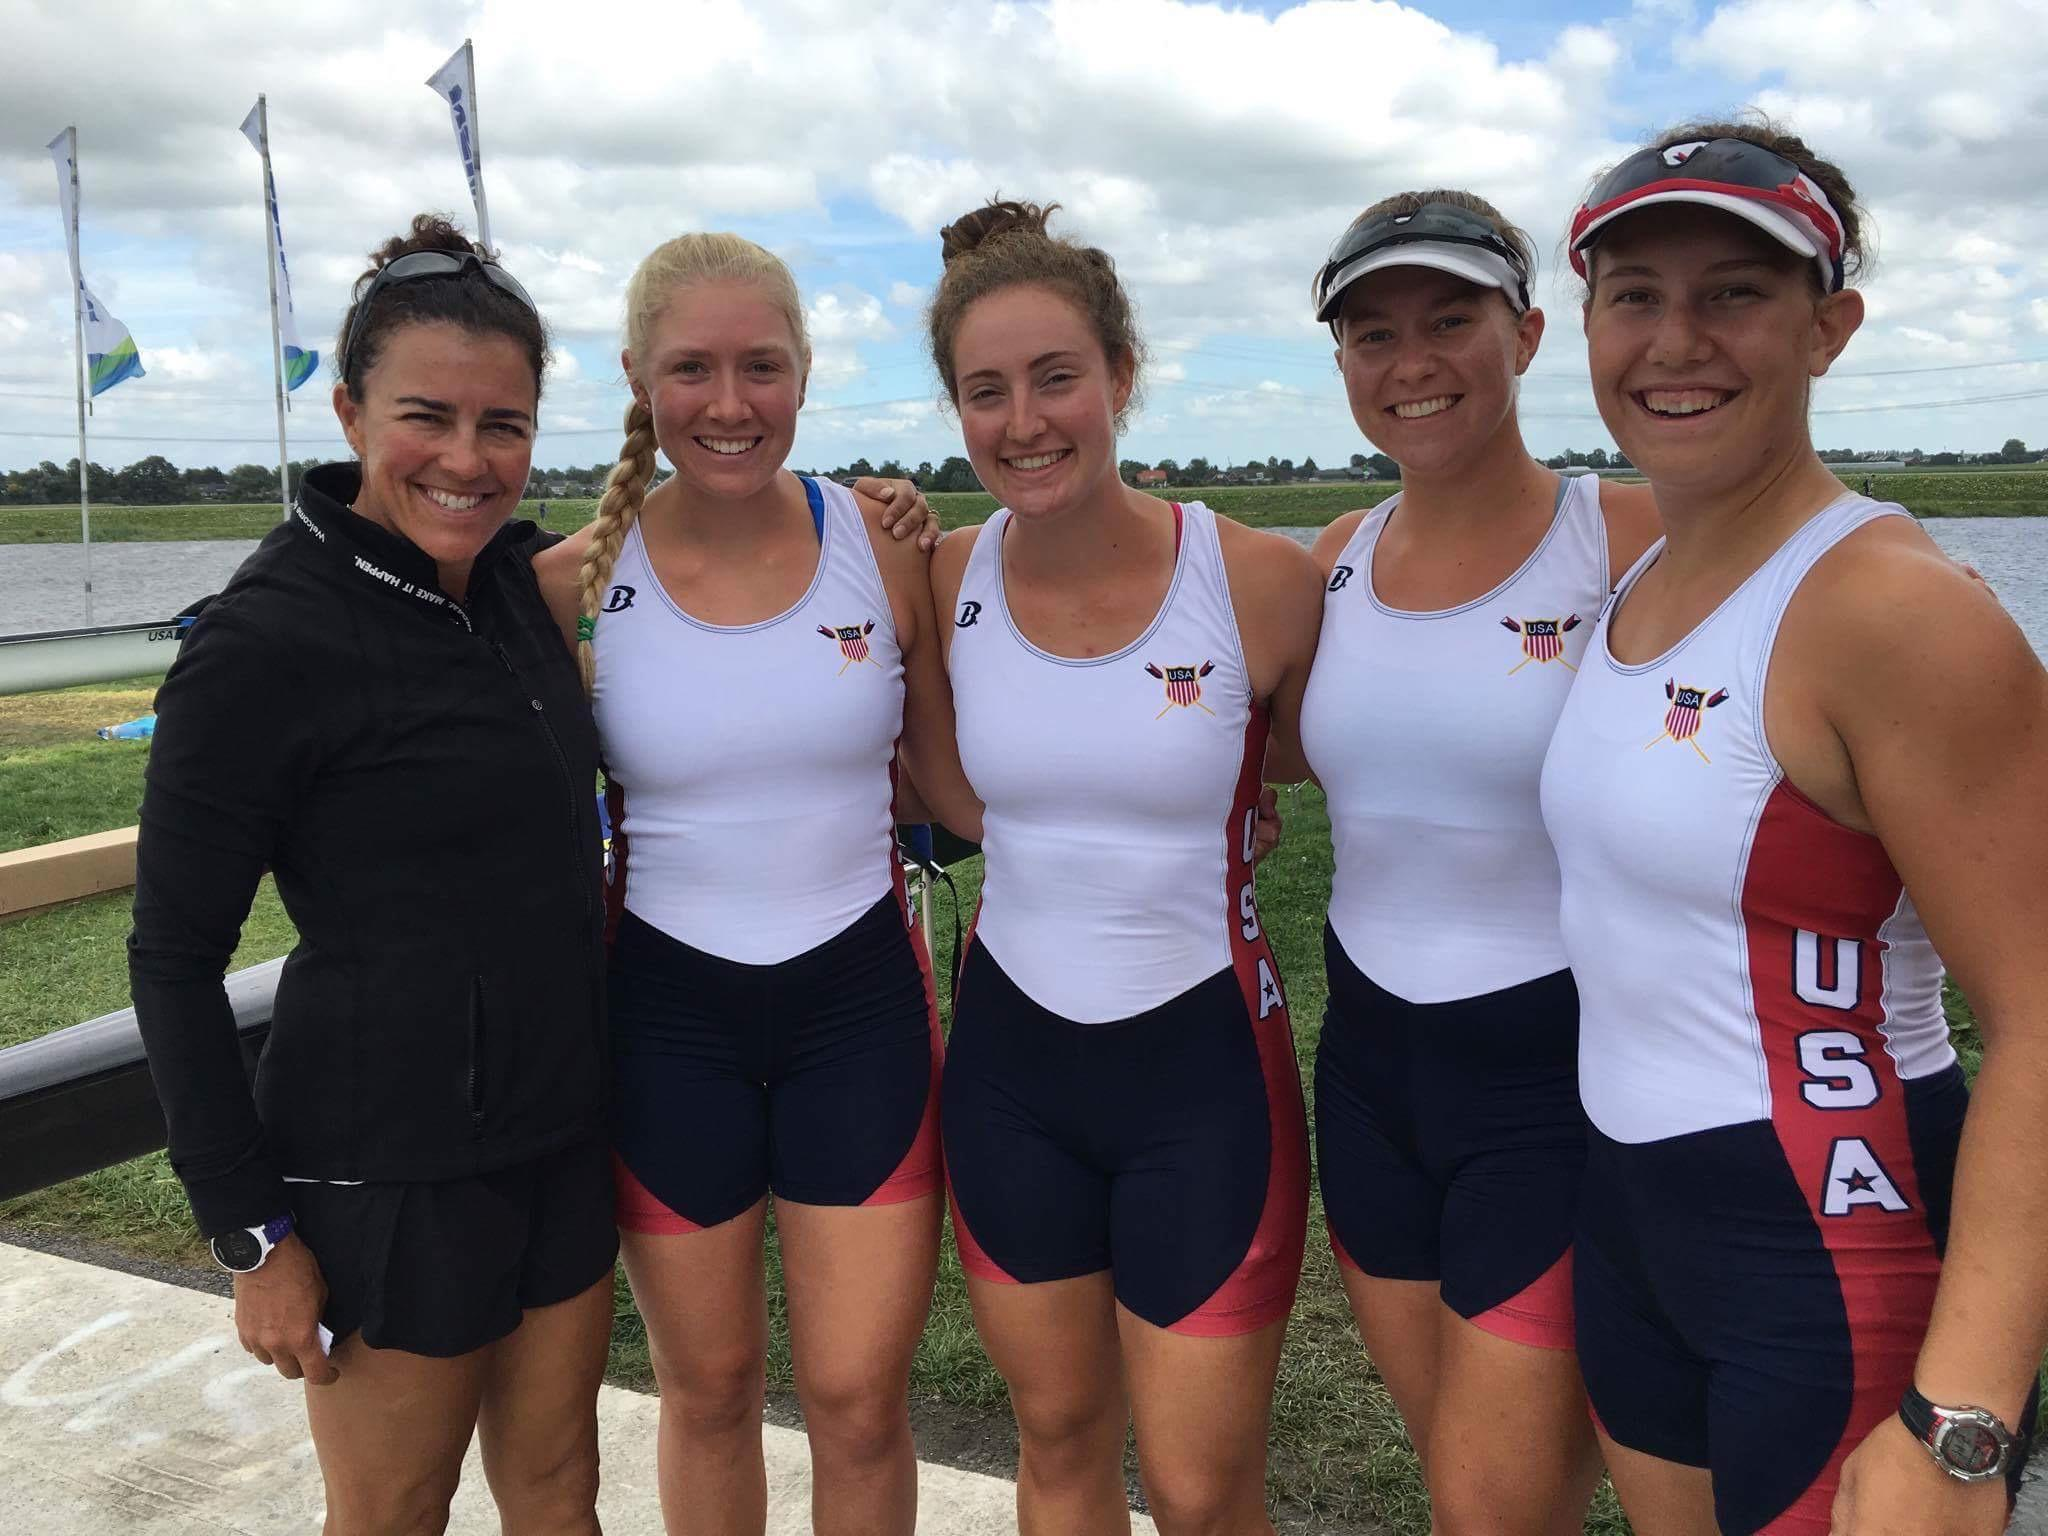 Jenna Van de Grift rows to victory in the 2016 World Rowing Championships.